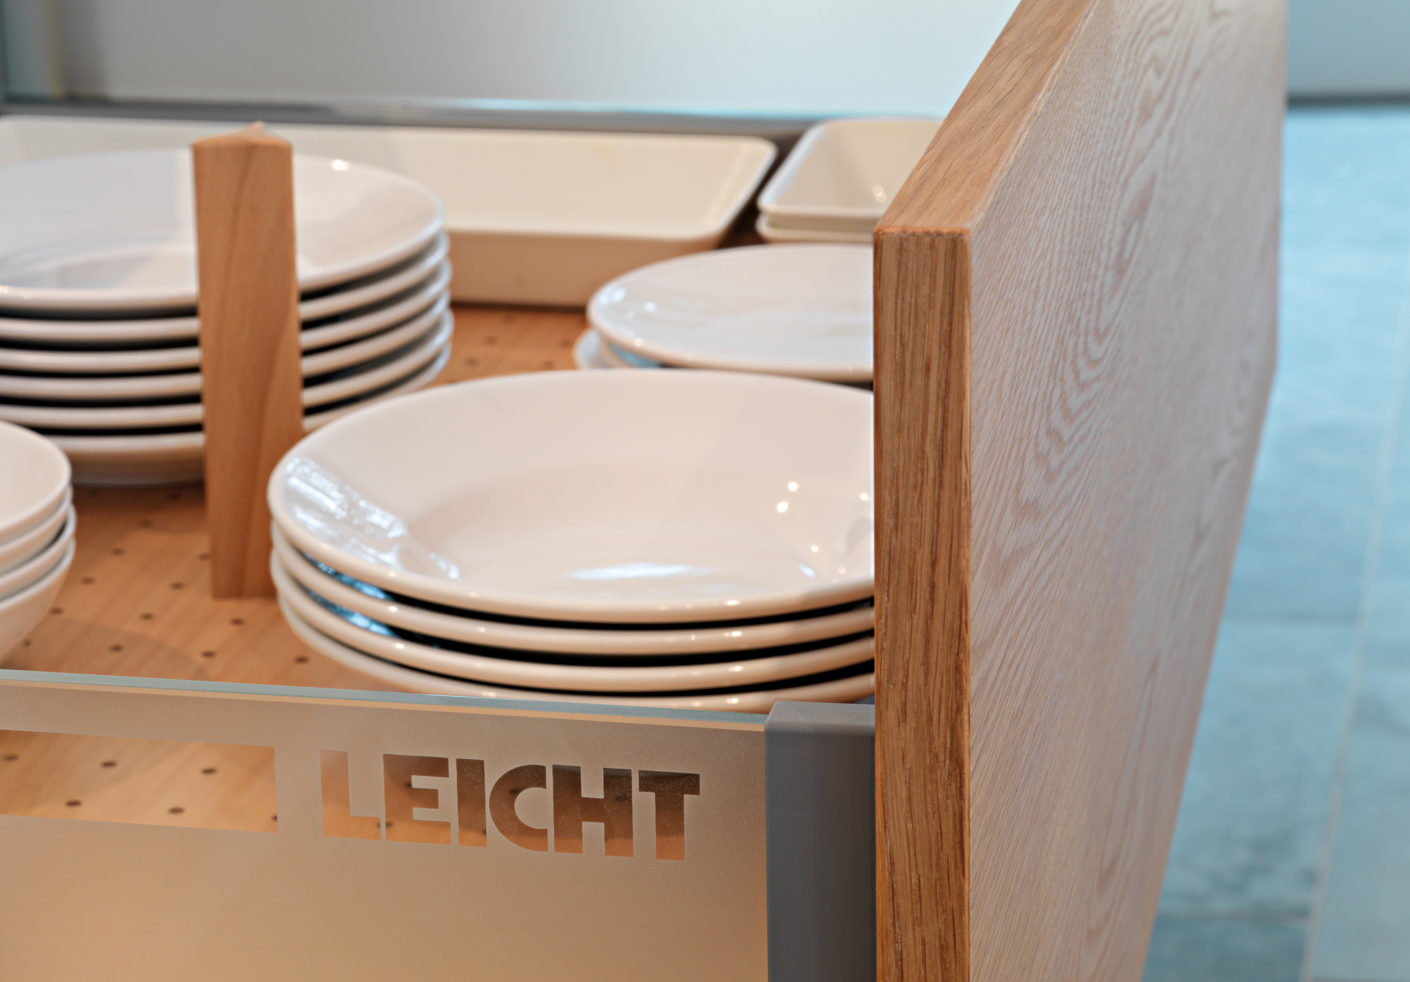 The drawers can be easily opened and closed by light pressure, handles are not necessary.